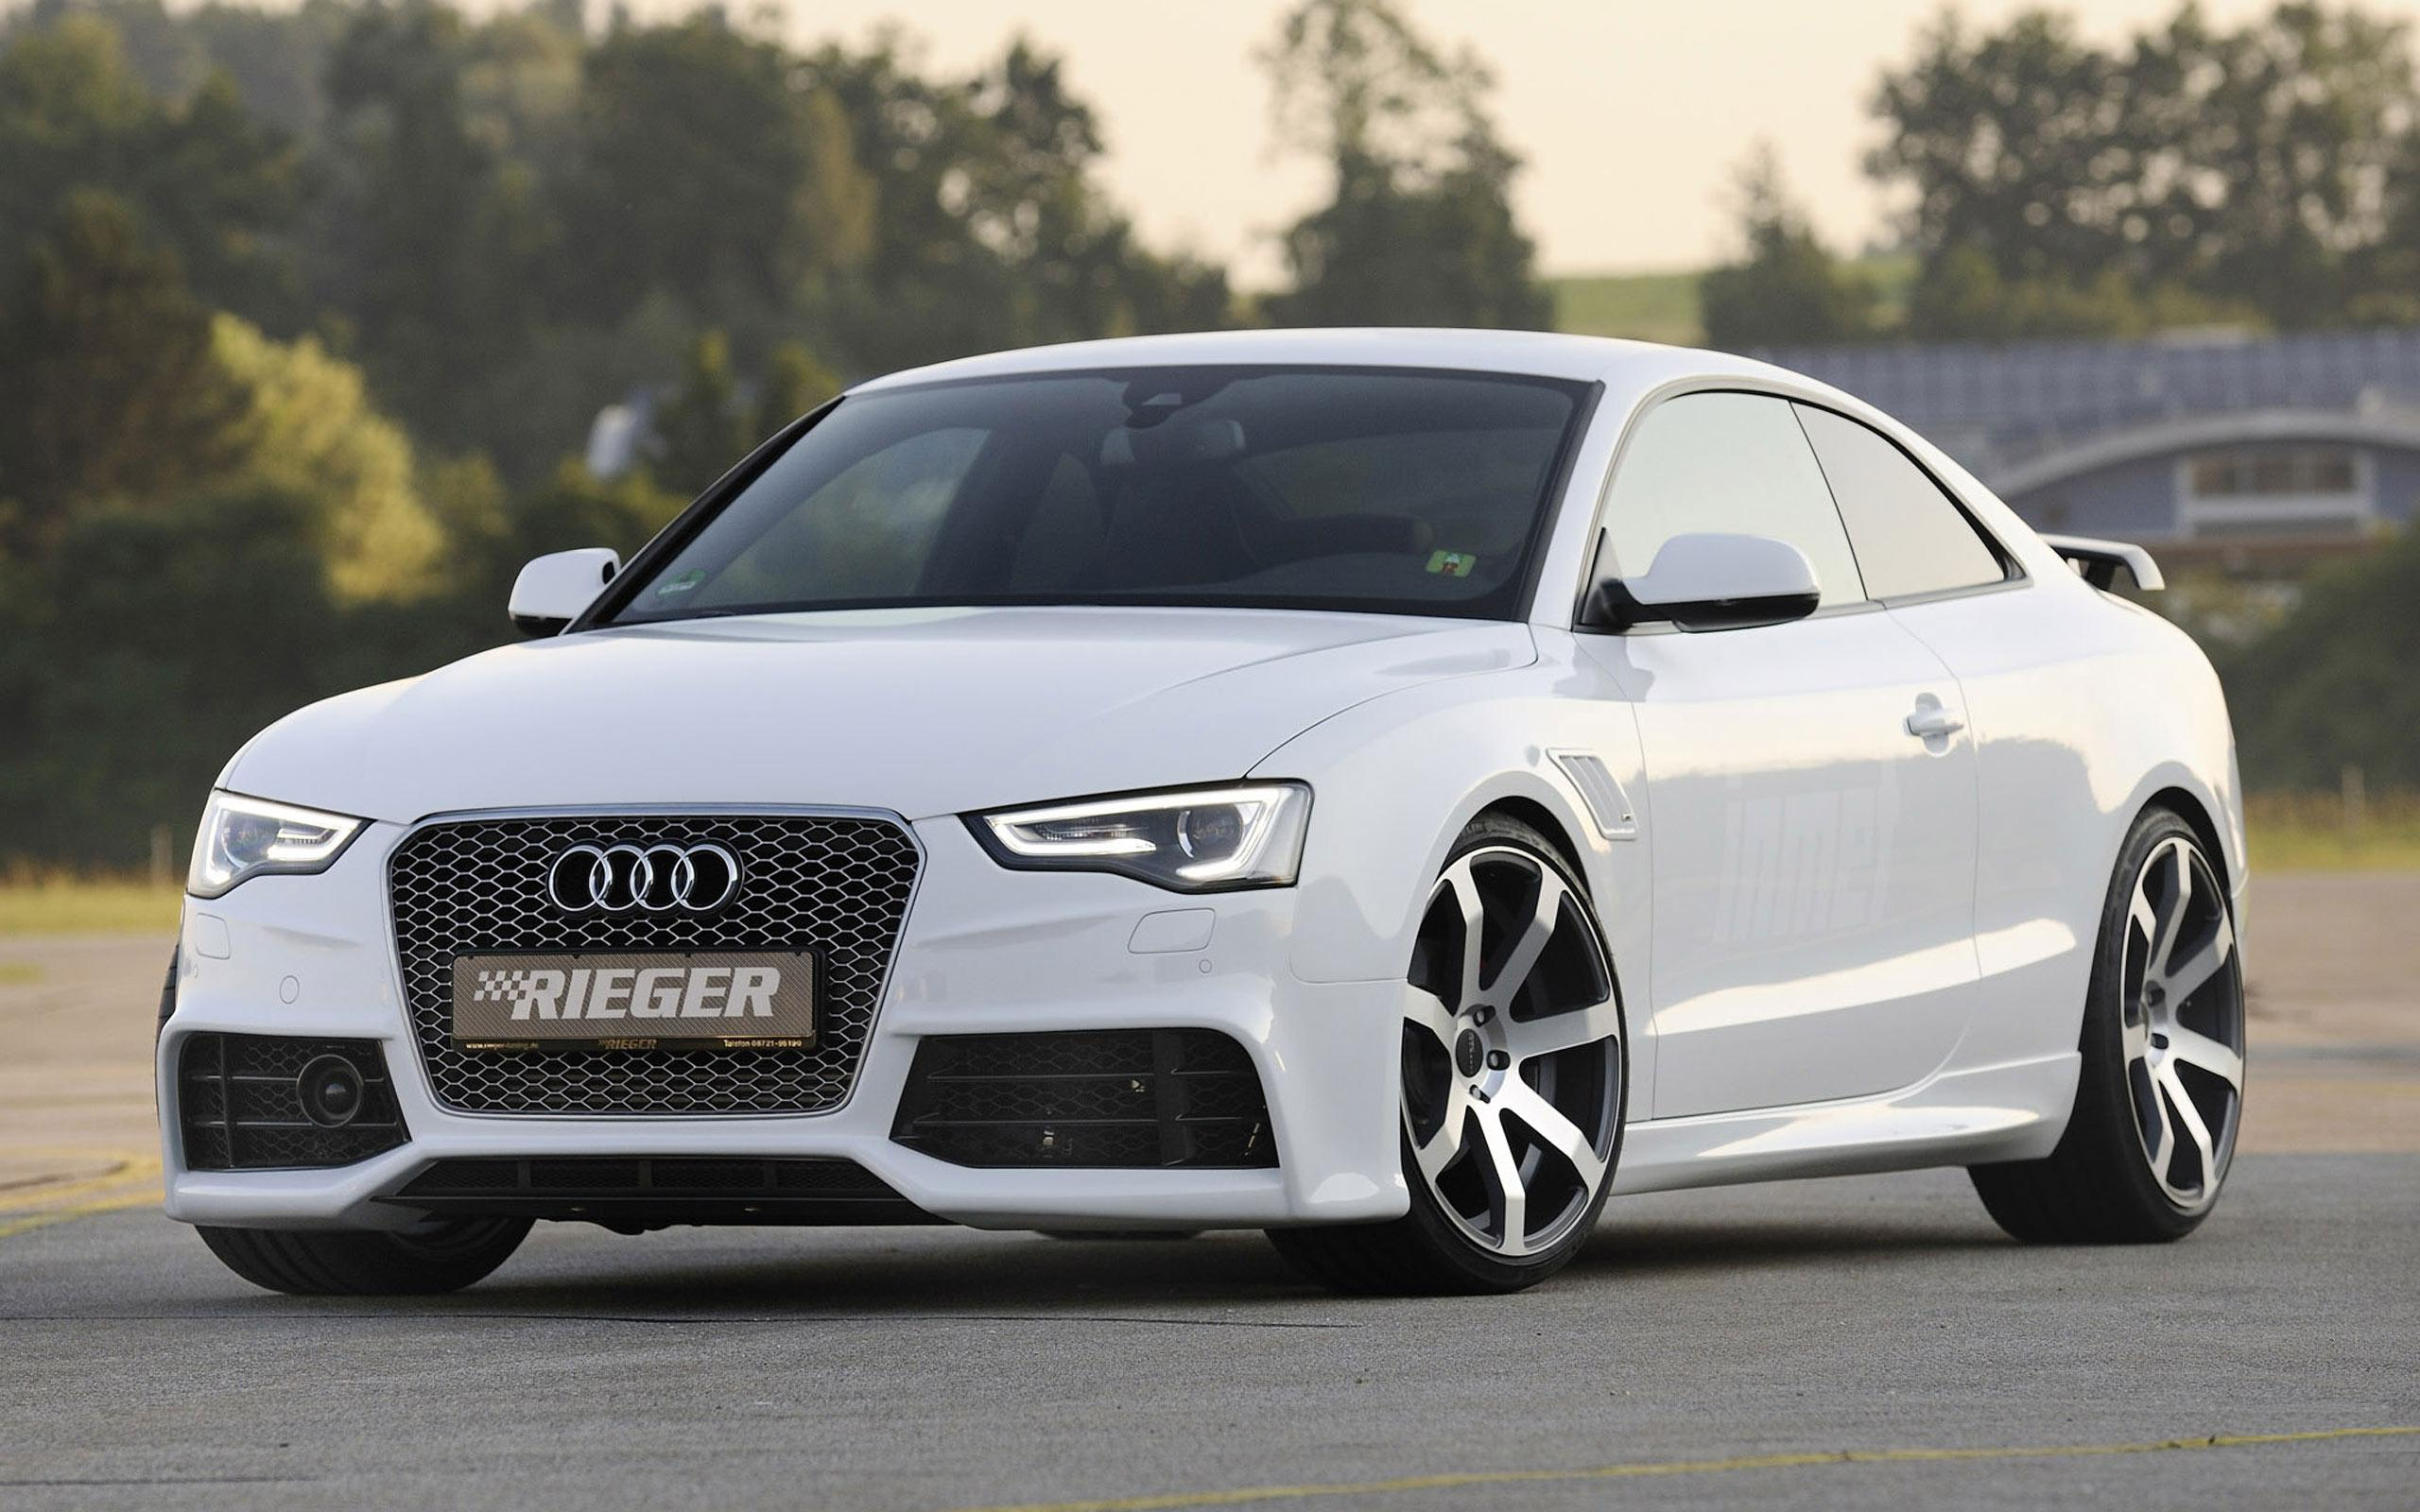 Audi Car Images And Wallpapers 2560x1600